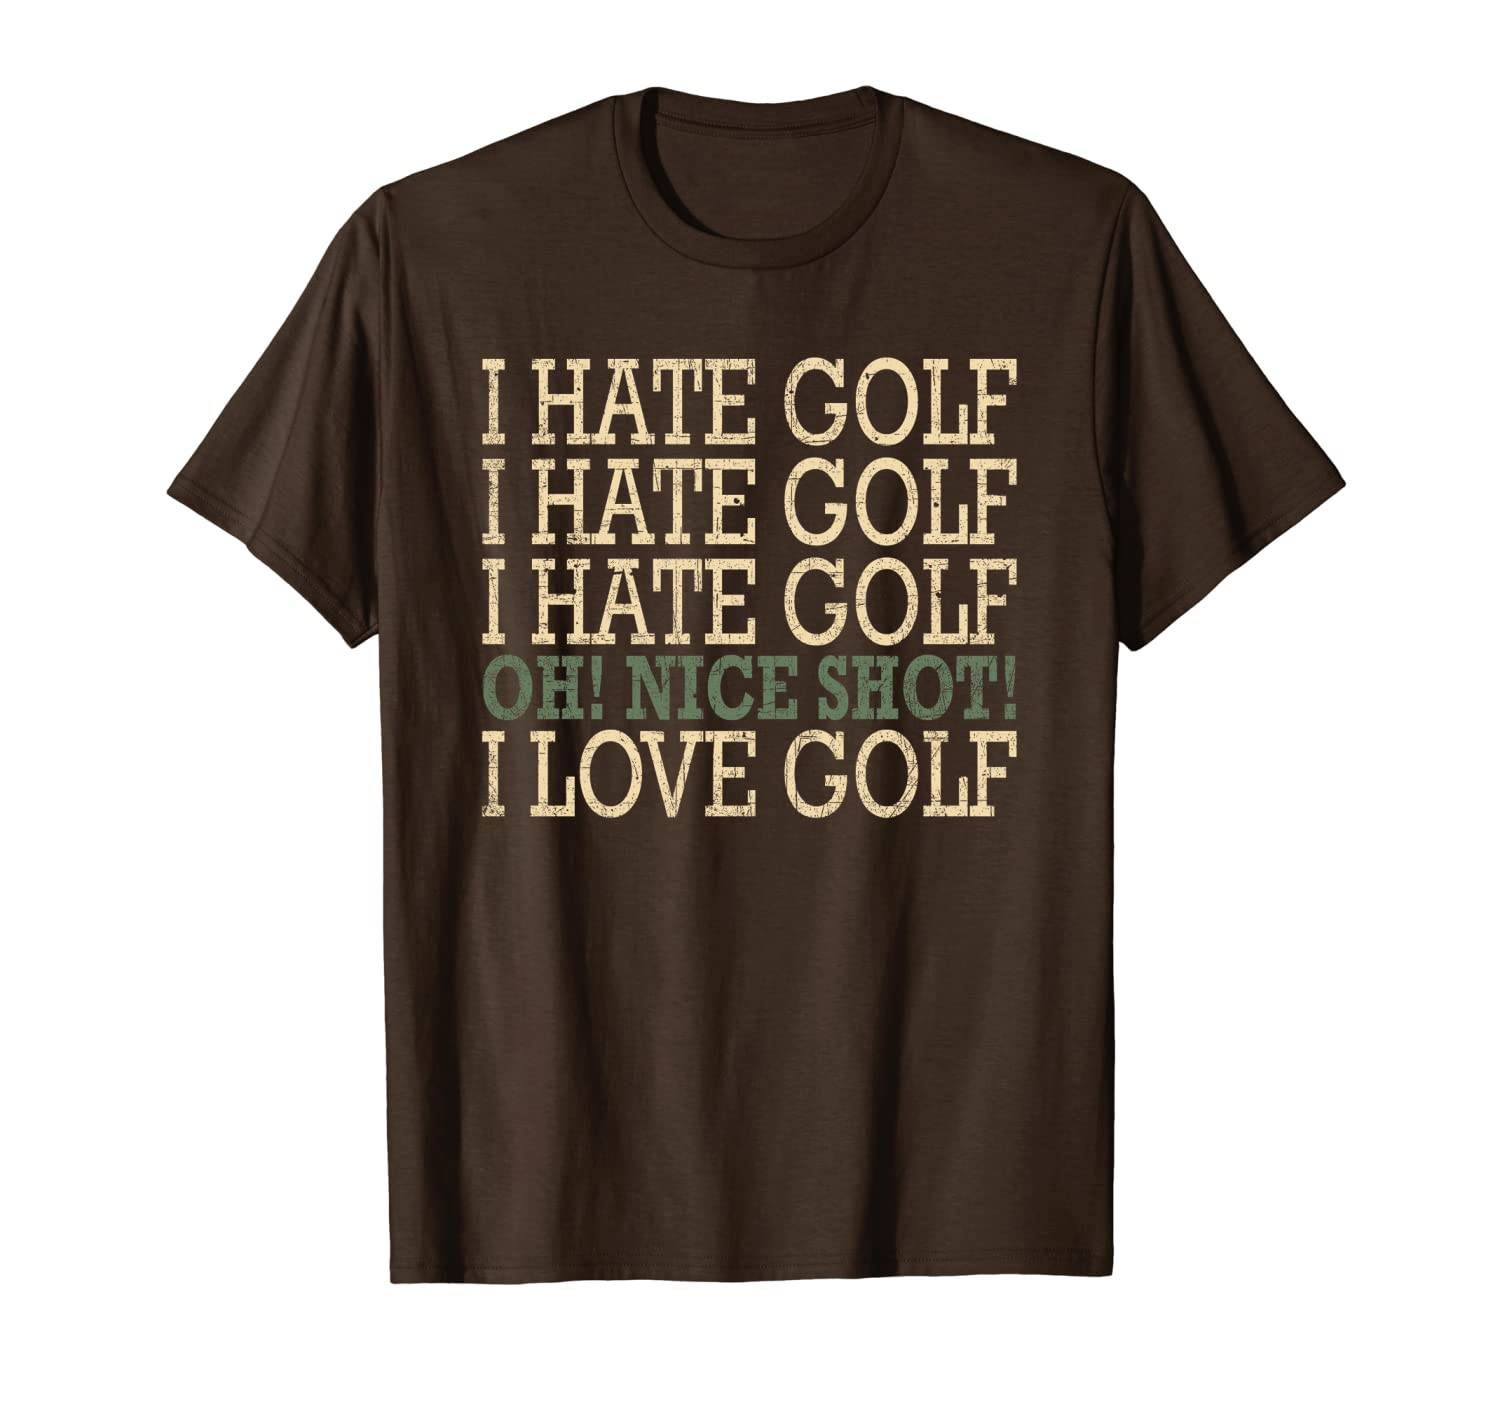 Funny-I Hate Golf-Oh Nice Shot-I Love Golf Humor T-Shirt-TH